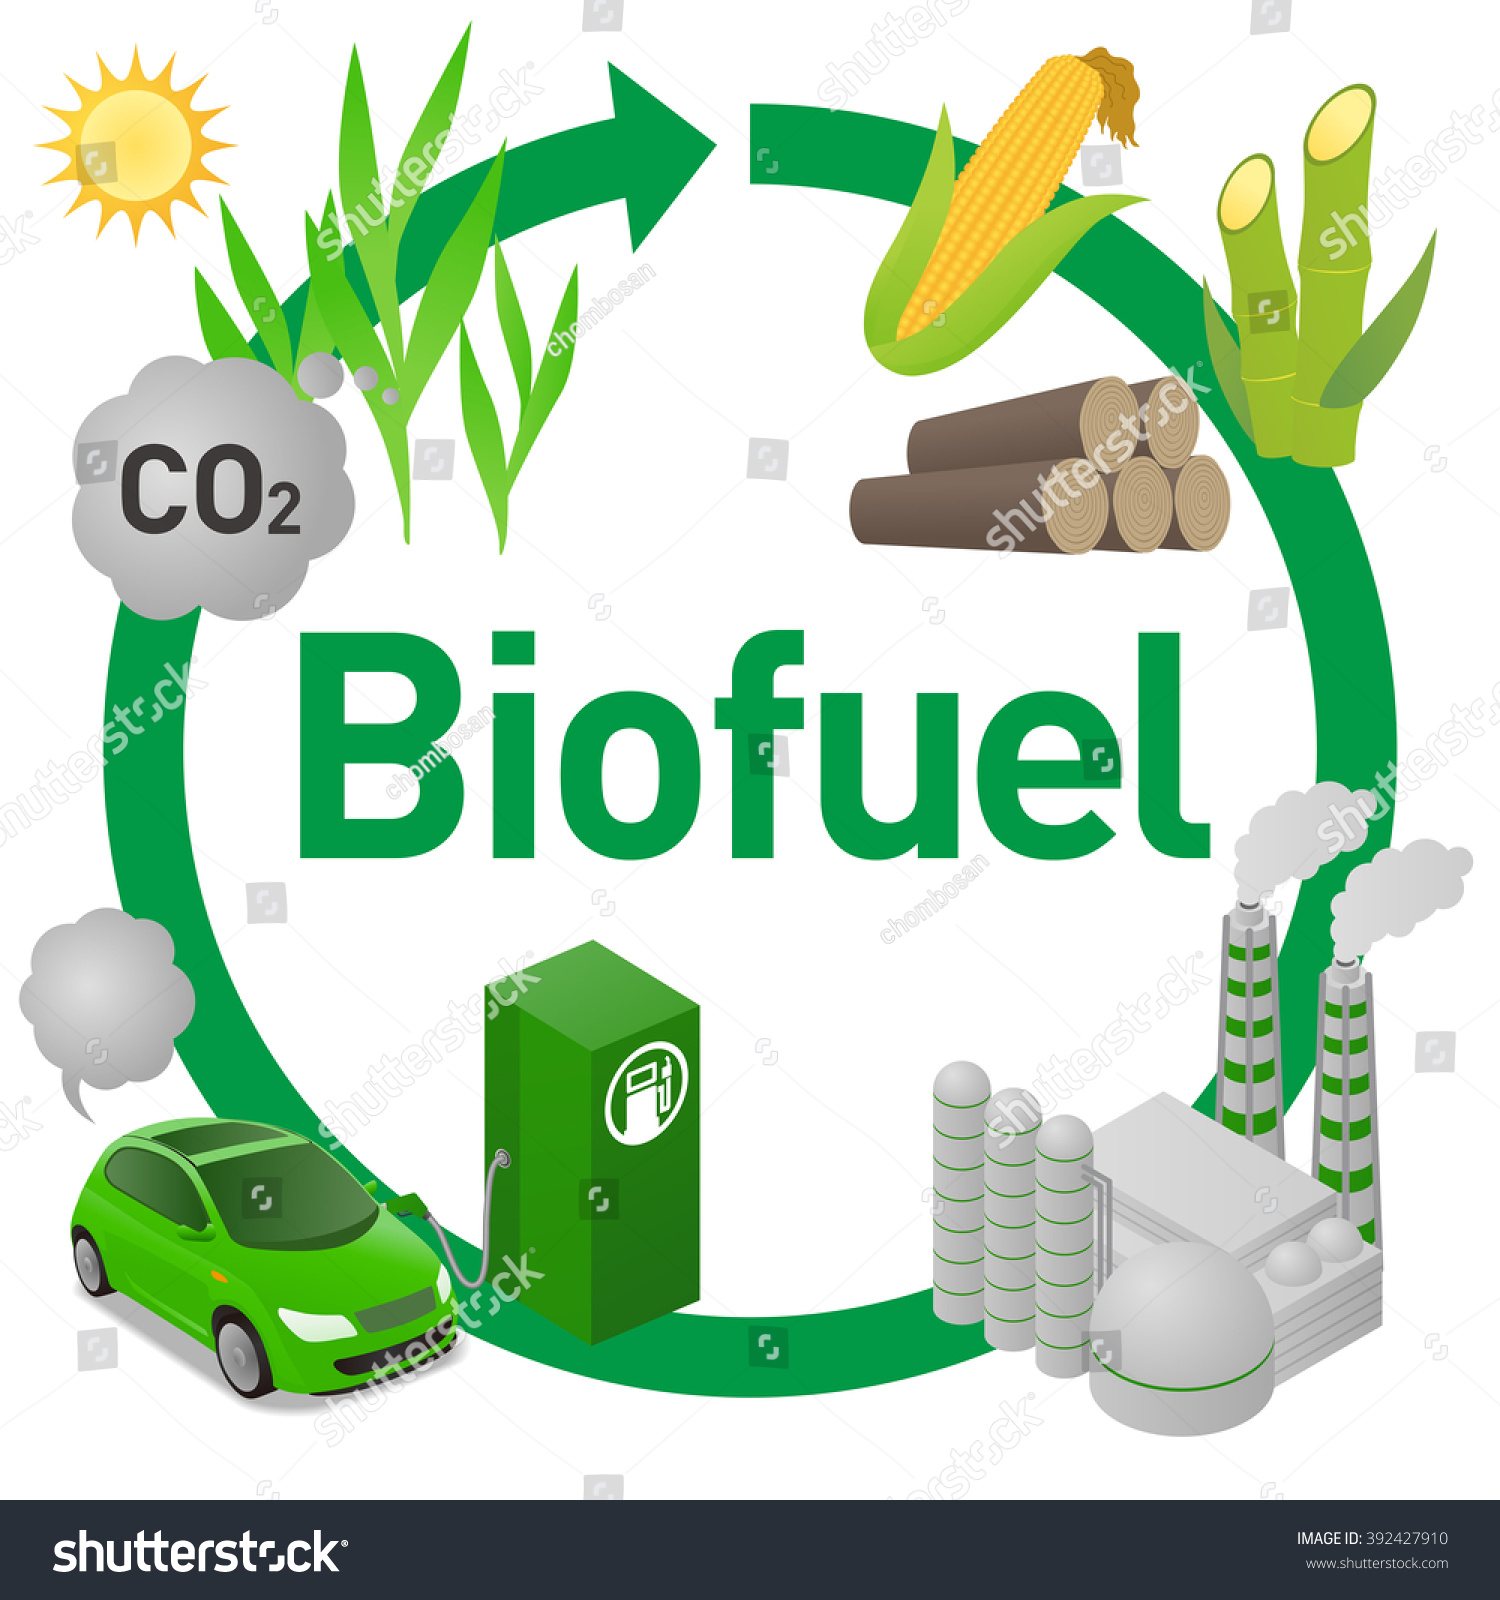 corn plant life cycle diagram 2006 ford e350 brake light wiring biofuel biomass ethanol stock vector